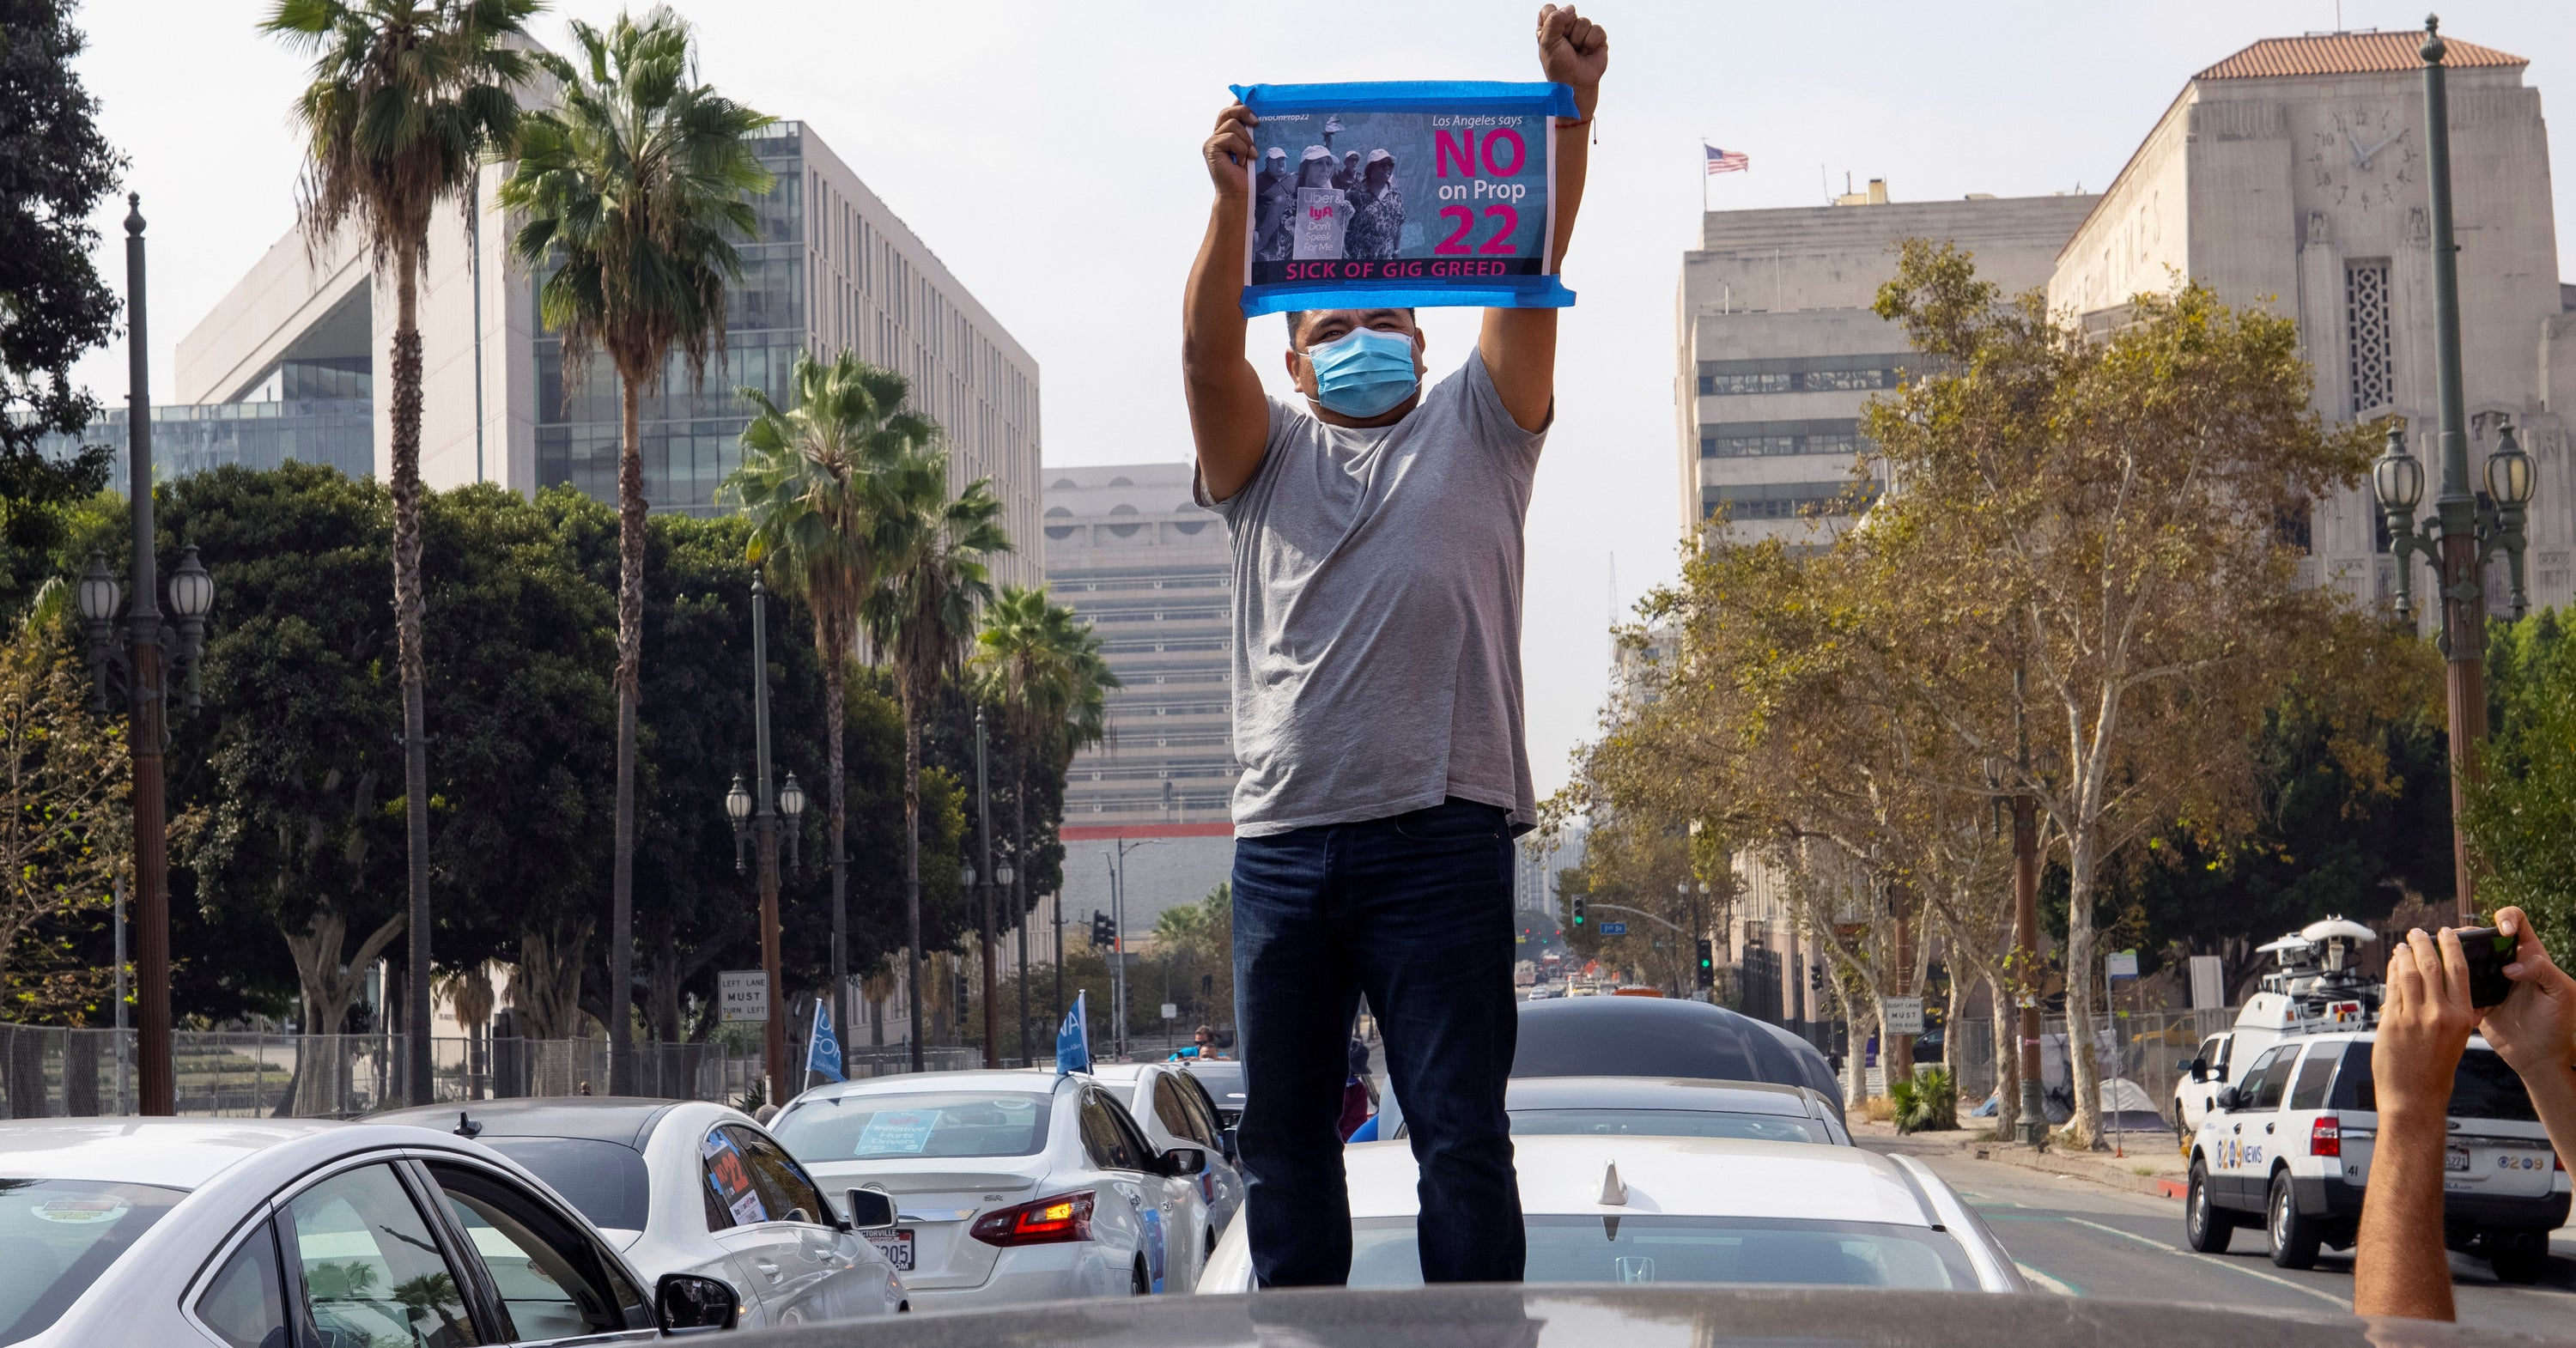 Uber And Lyft Spent Hundreds Of Millions To Win Their Fight Over Workers' Rights. It Worked.